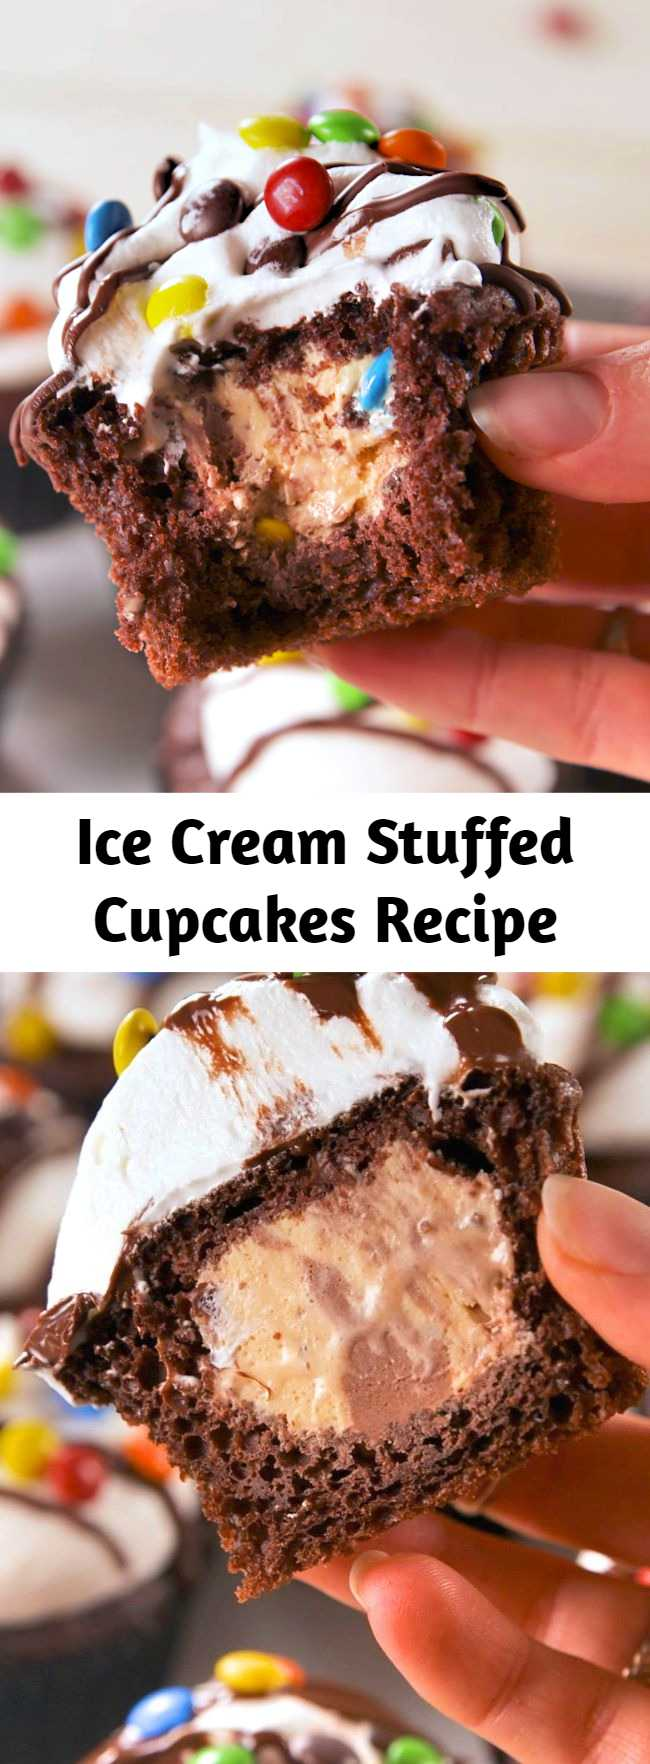 Cupcakes and ice cream all in one! It's easy to fill your favorite cupcakes with your favorite ice cream to make one easy to serve and eat party treat. The method is super easy - and the options for flavor combinations are endless! Nothing beats ice cream and cake. #easyrecipe #baking #cupcakes #dessert #icecream